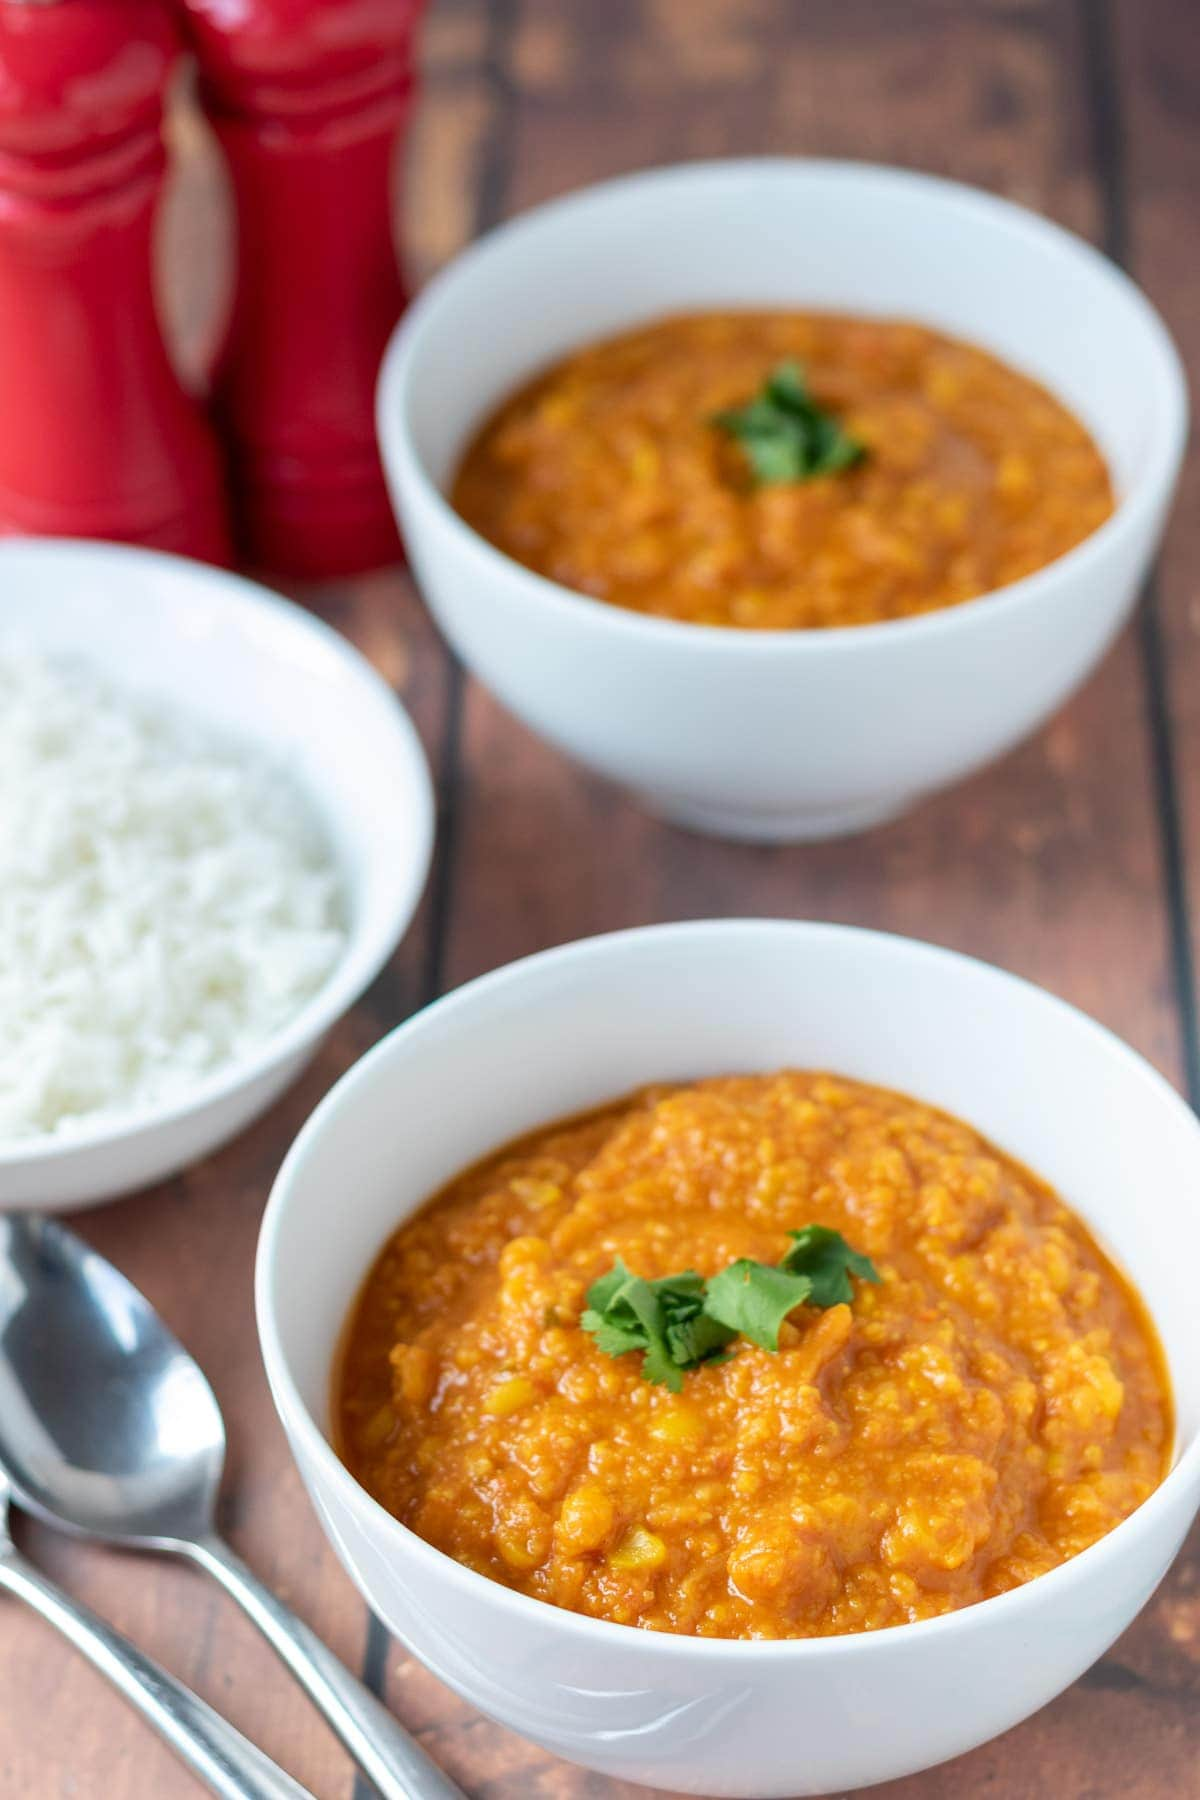 Two bowls of yellow lentil dahl one in front of the other garnished with coriander. A bowl of rice and spoons to the left hand side.